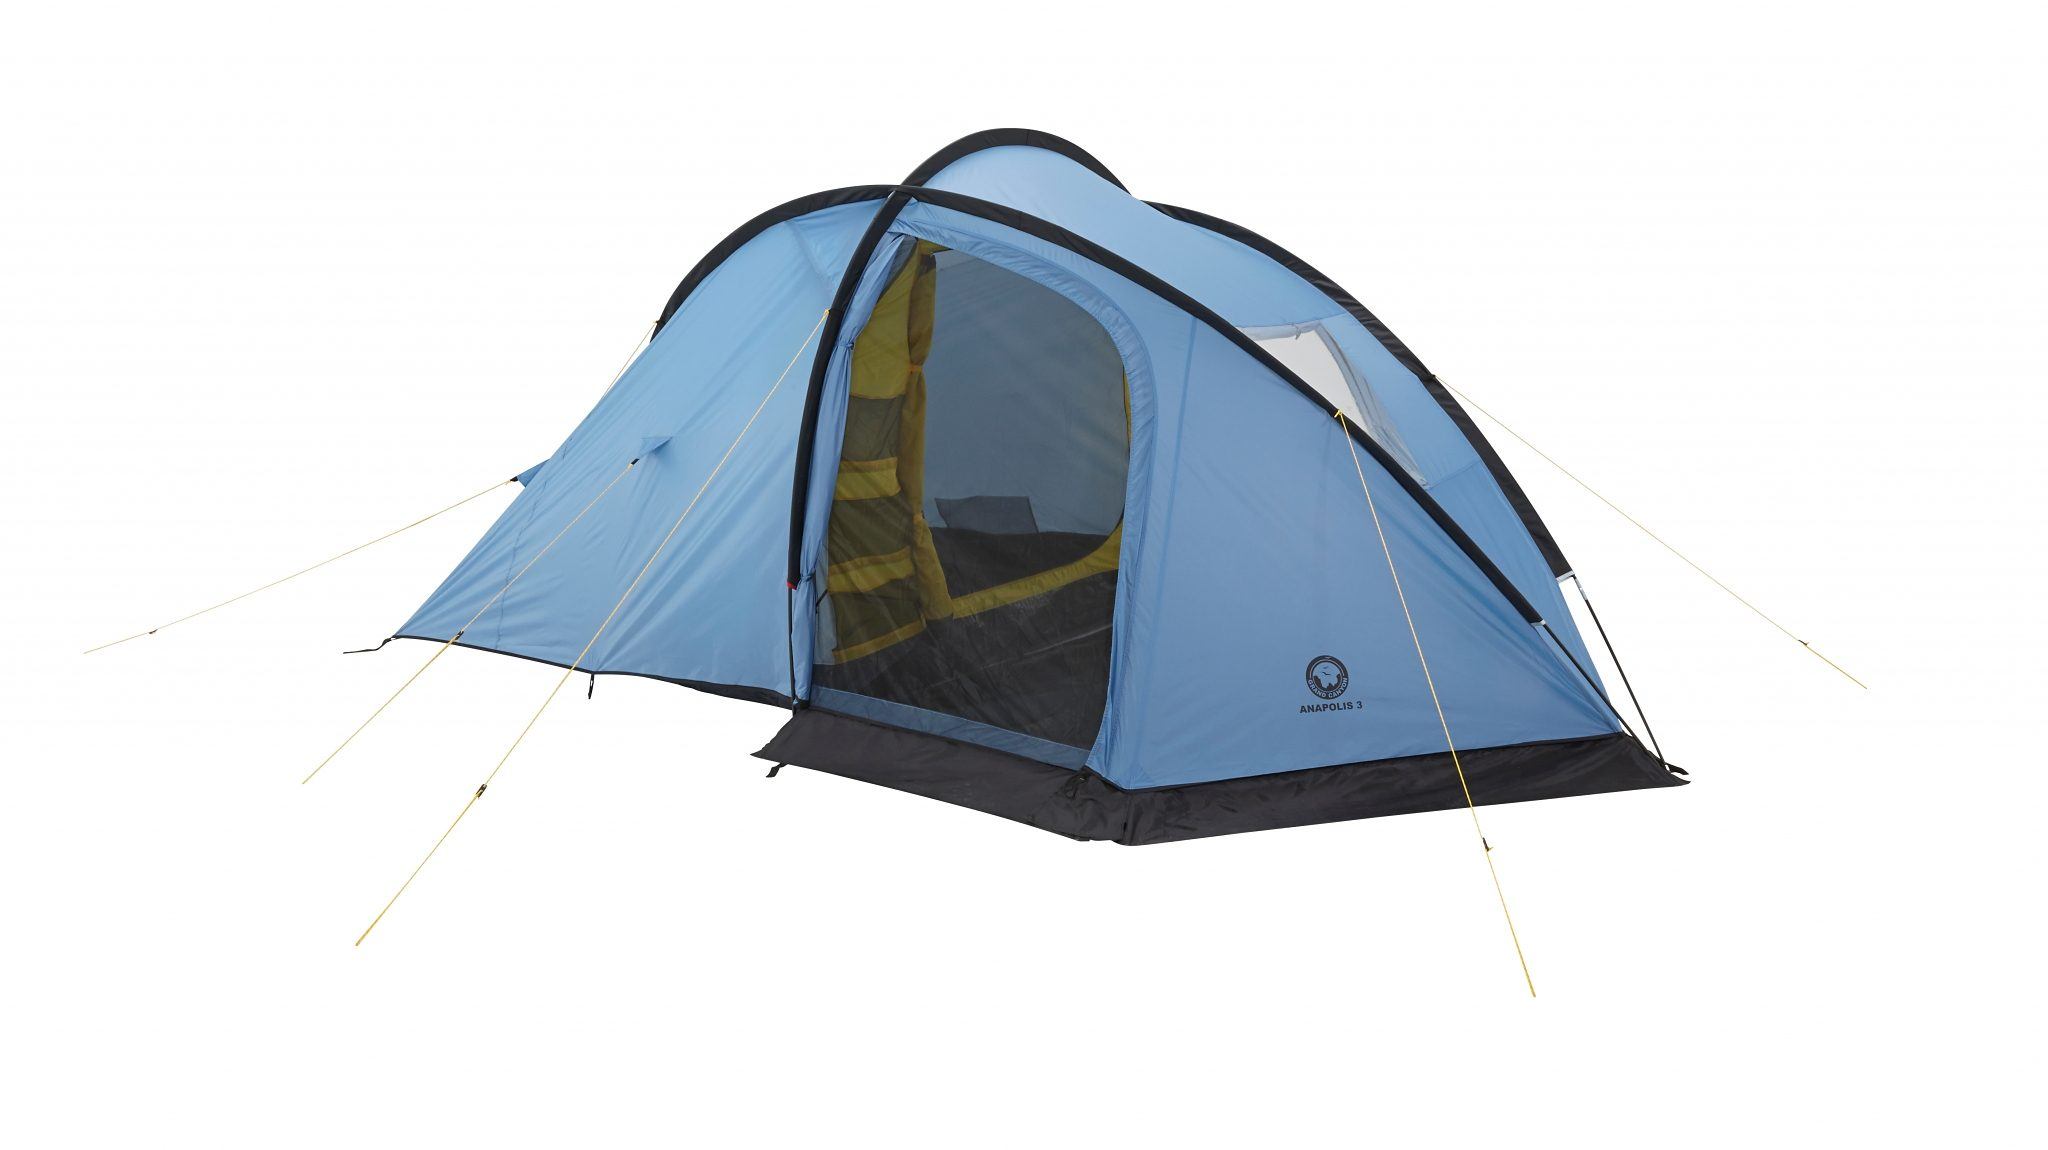 Grand Canyon Zelt »Anapolis 3 Tent«